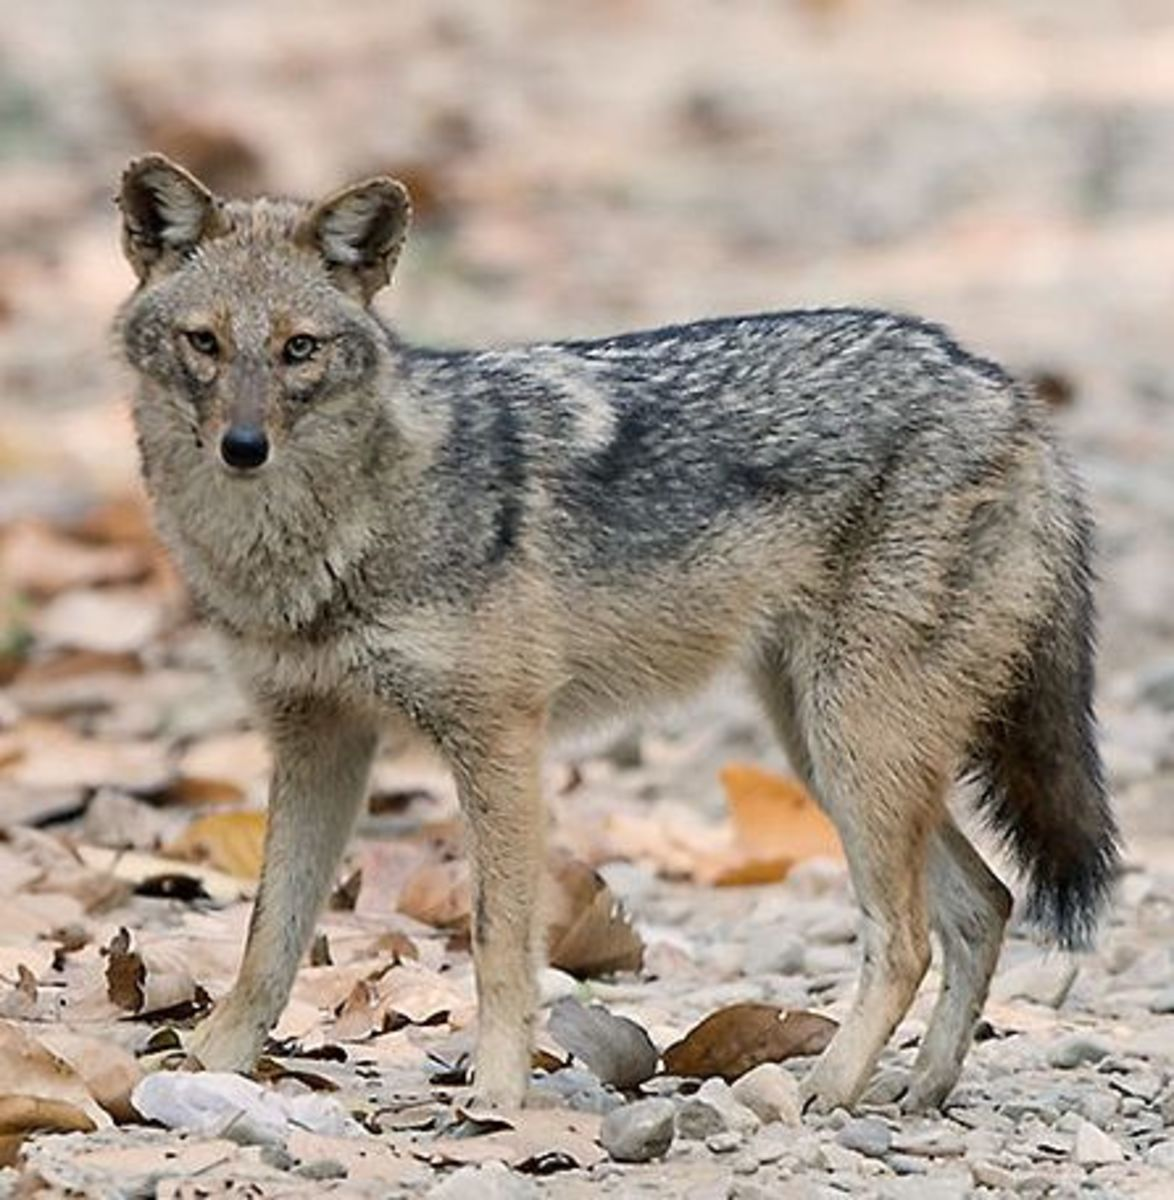 A Golden Jackal, one of the breeds used to develop the Sulimov dog.